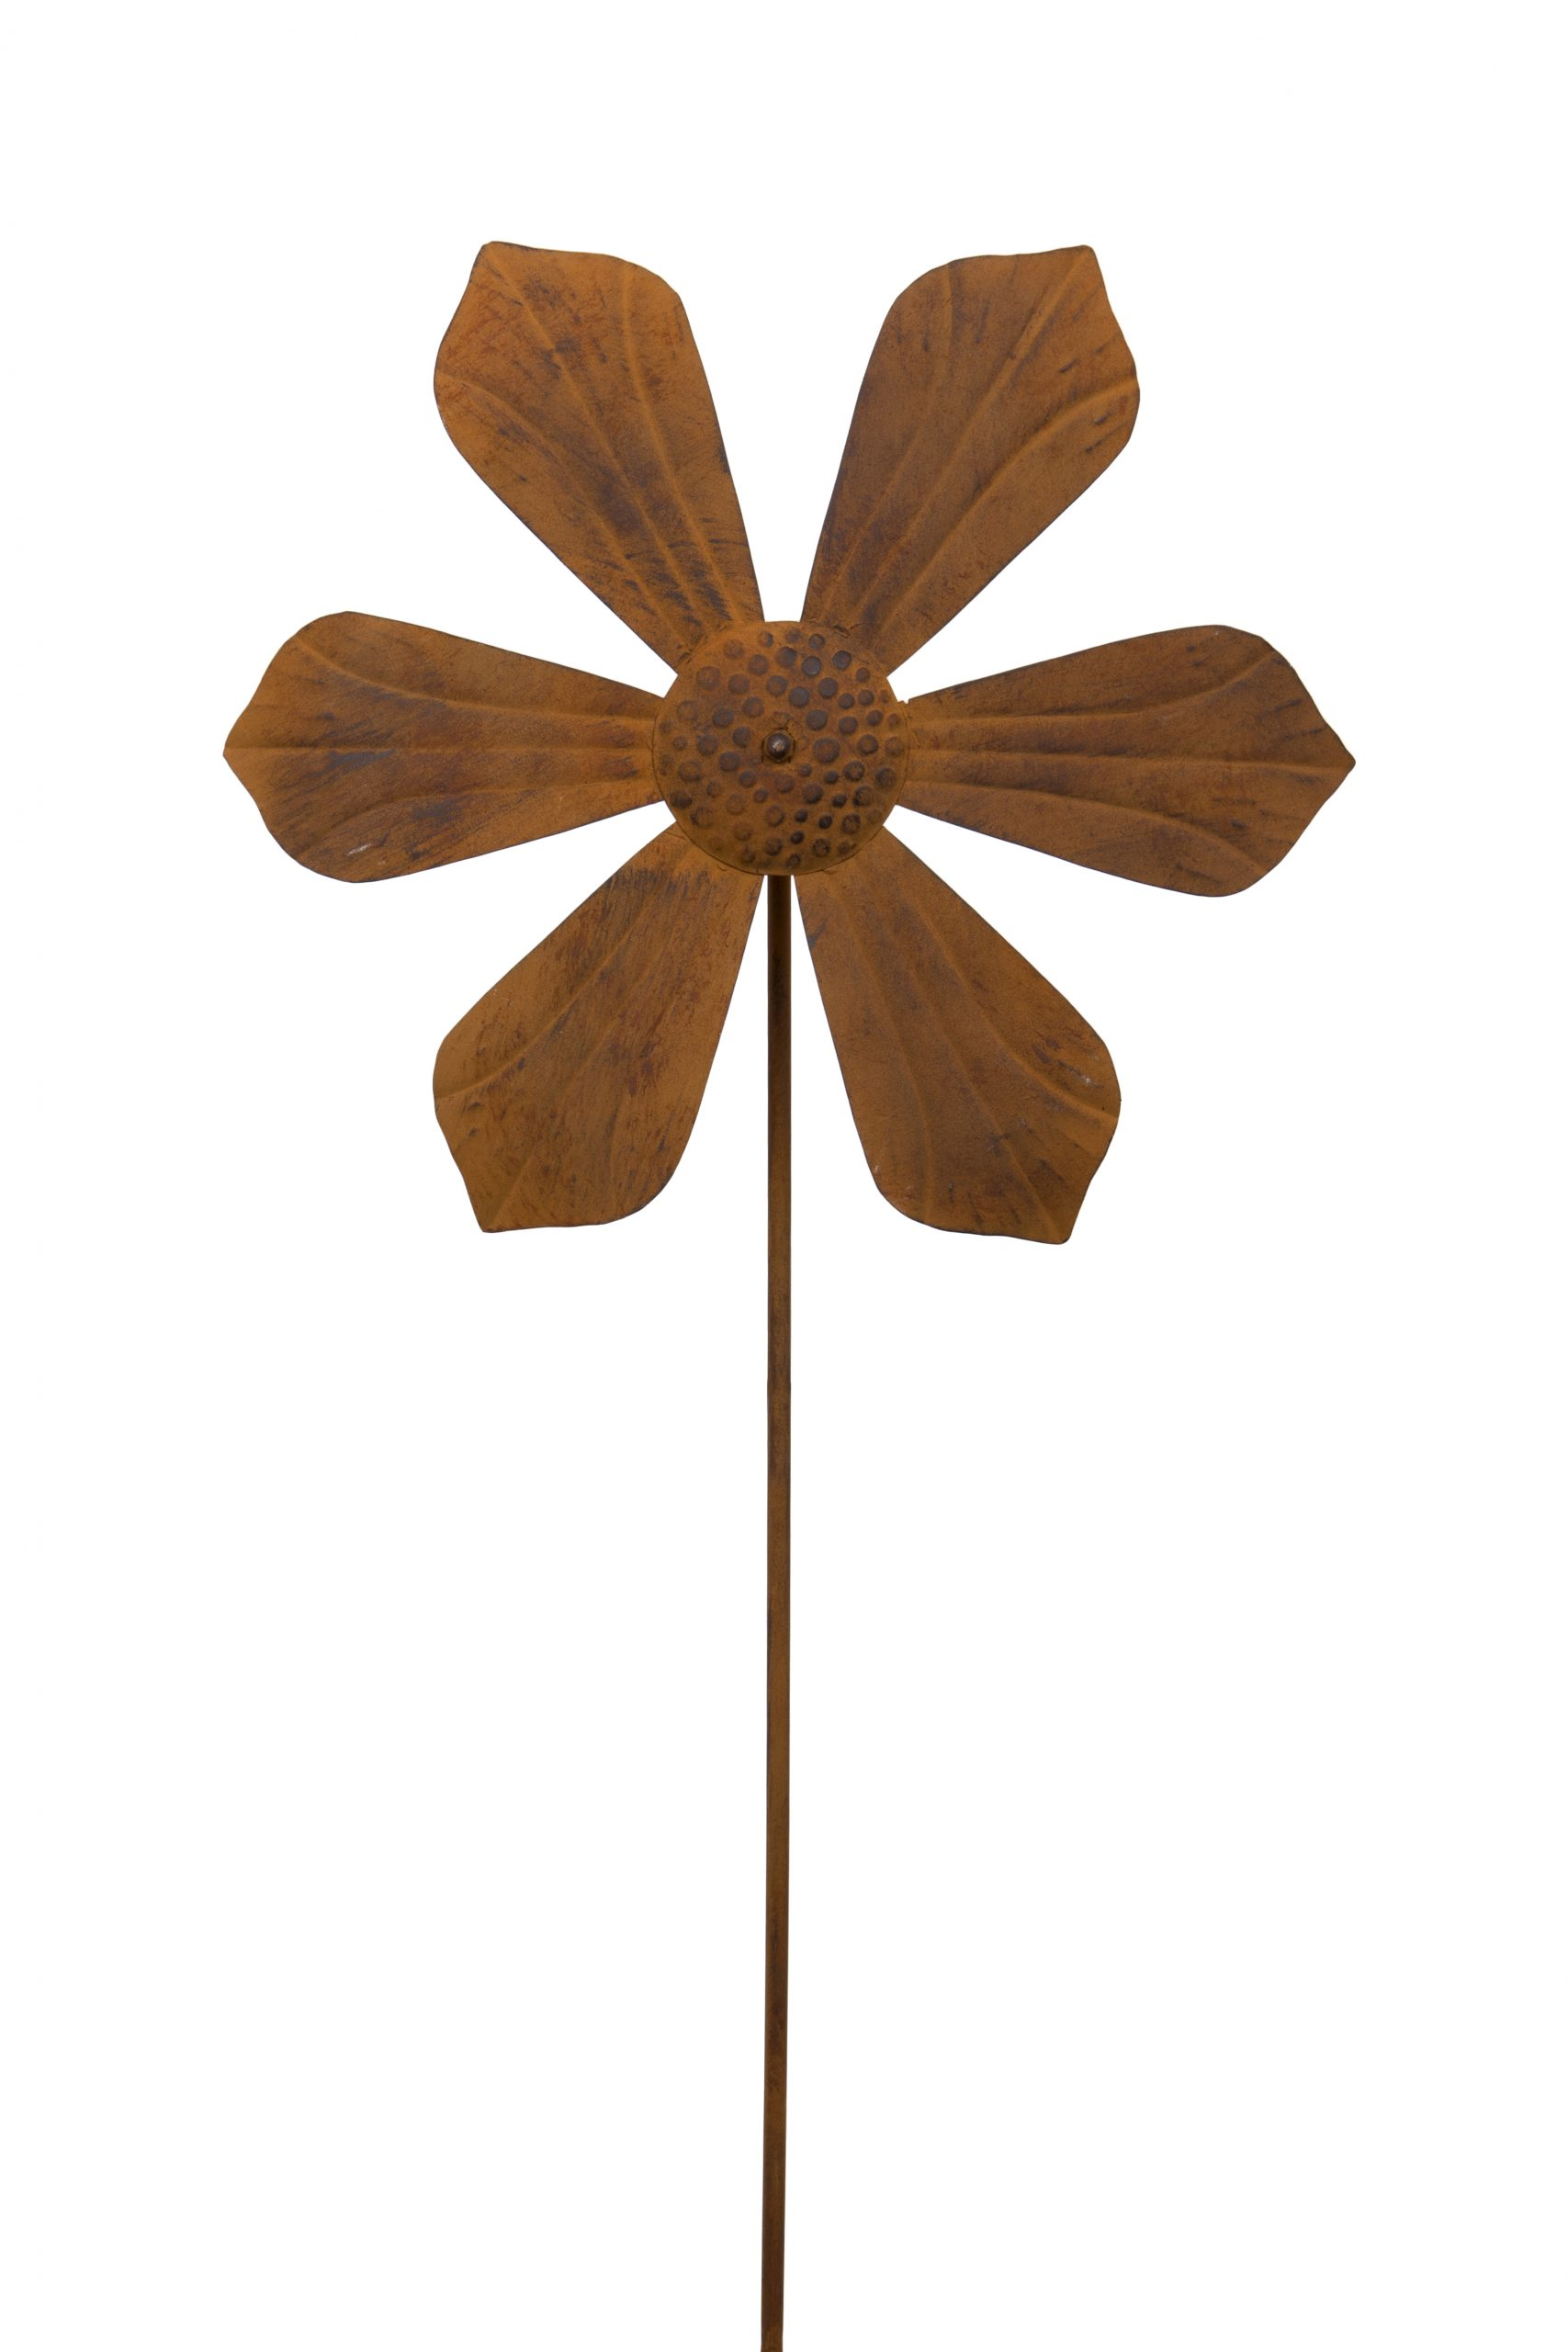 London Ornaments Rusted Flower Spinner